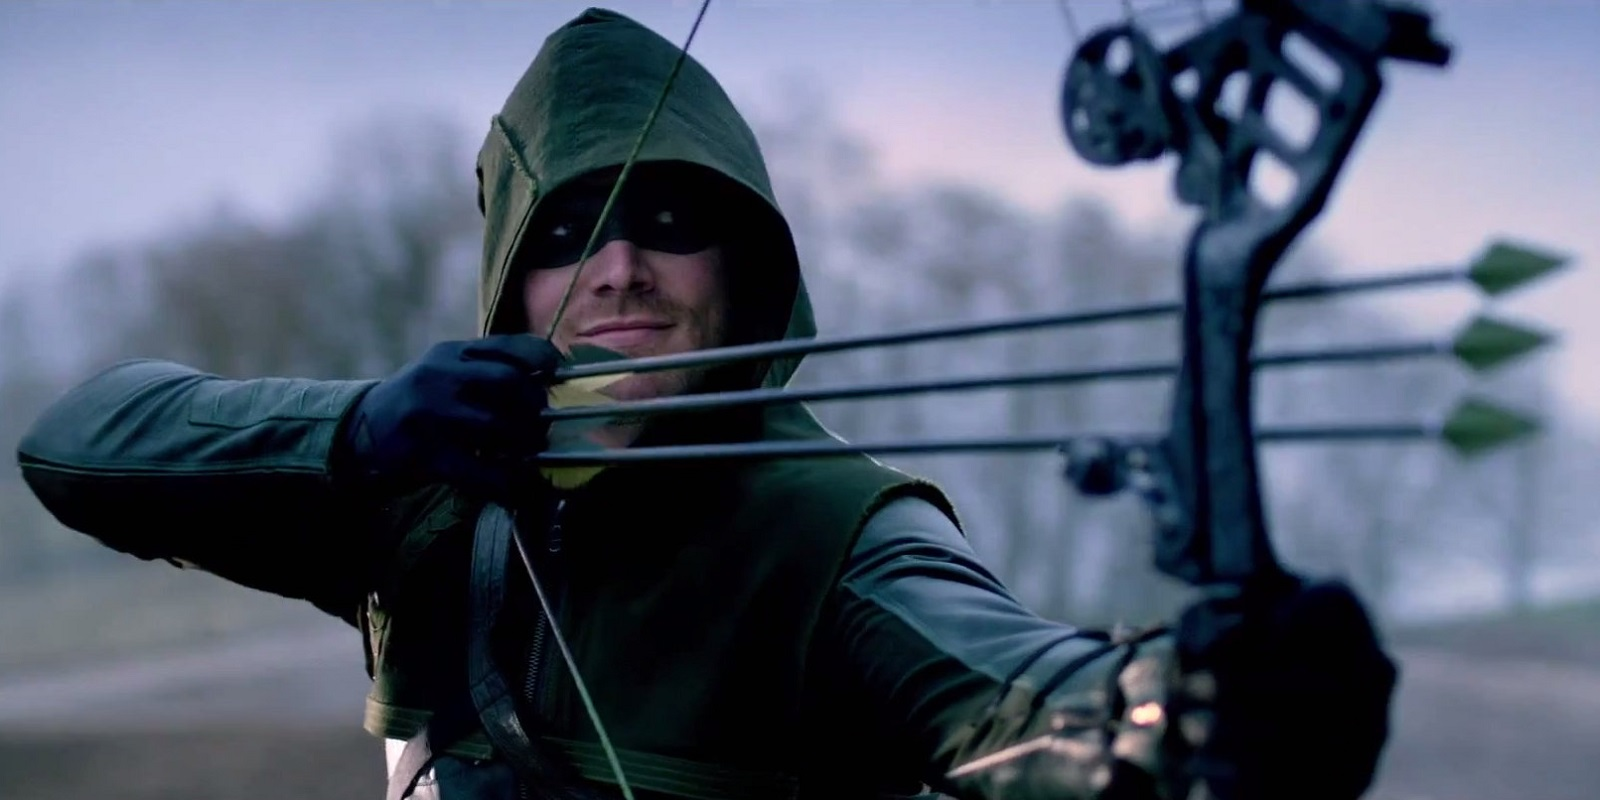 15 Trick Arrows We Want To See In Arrow.